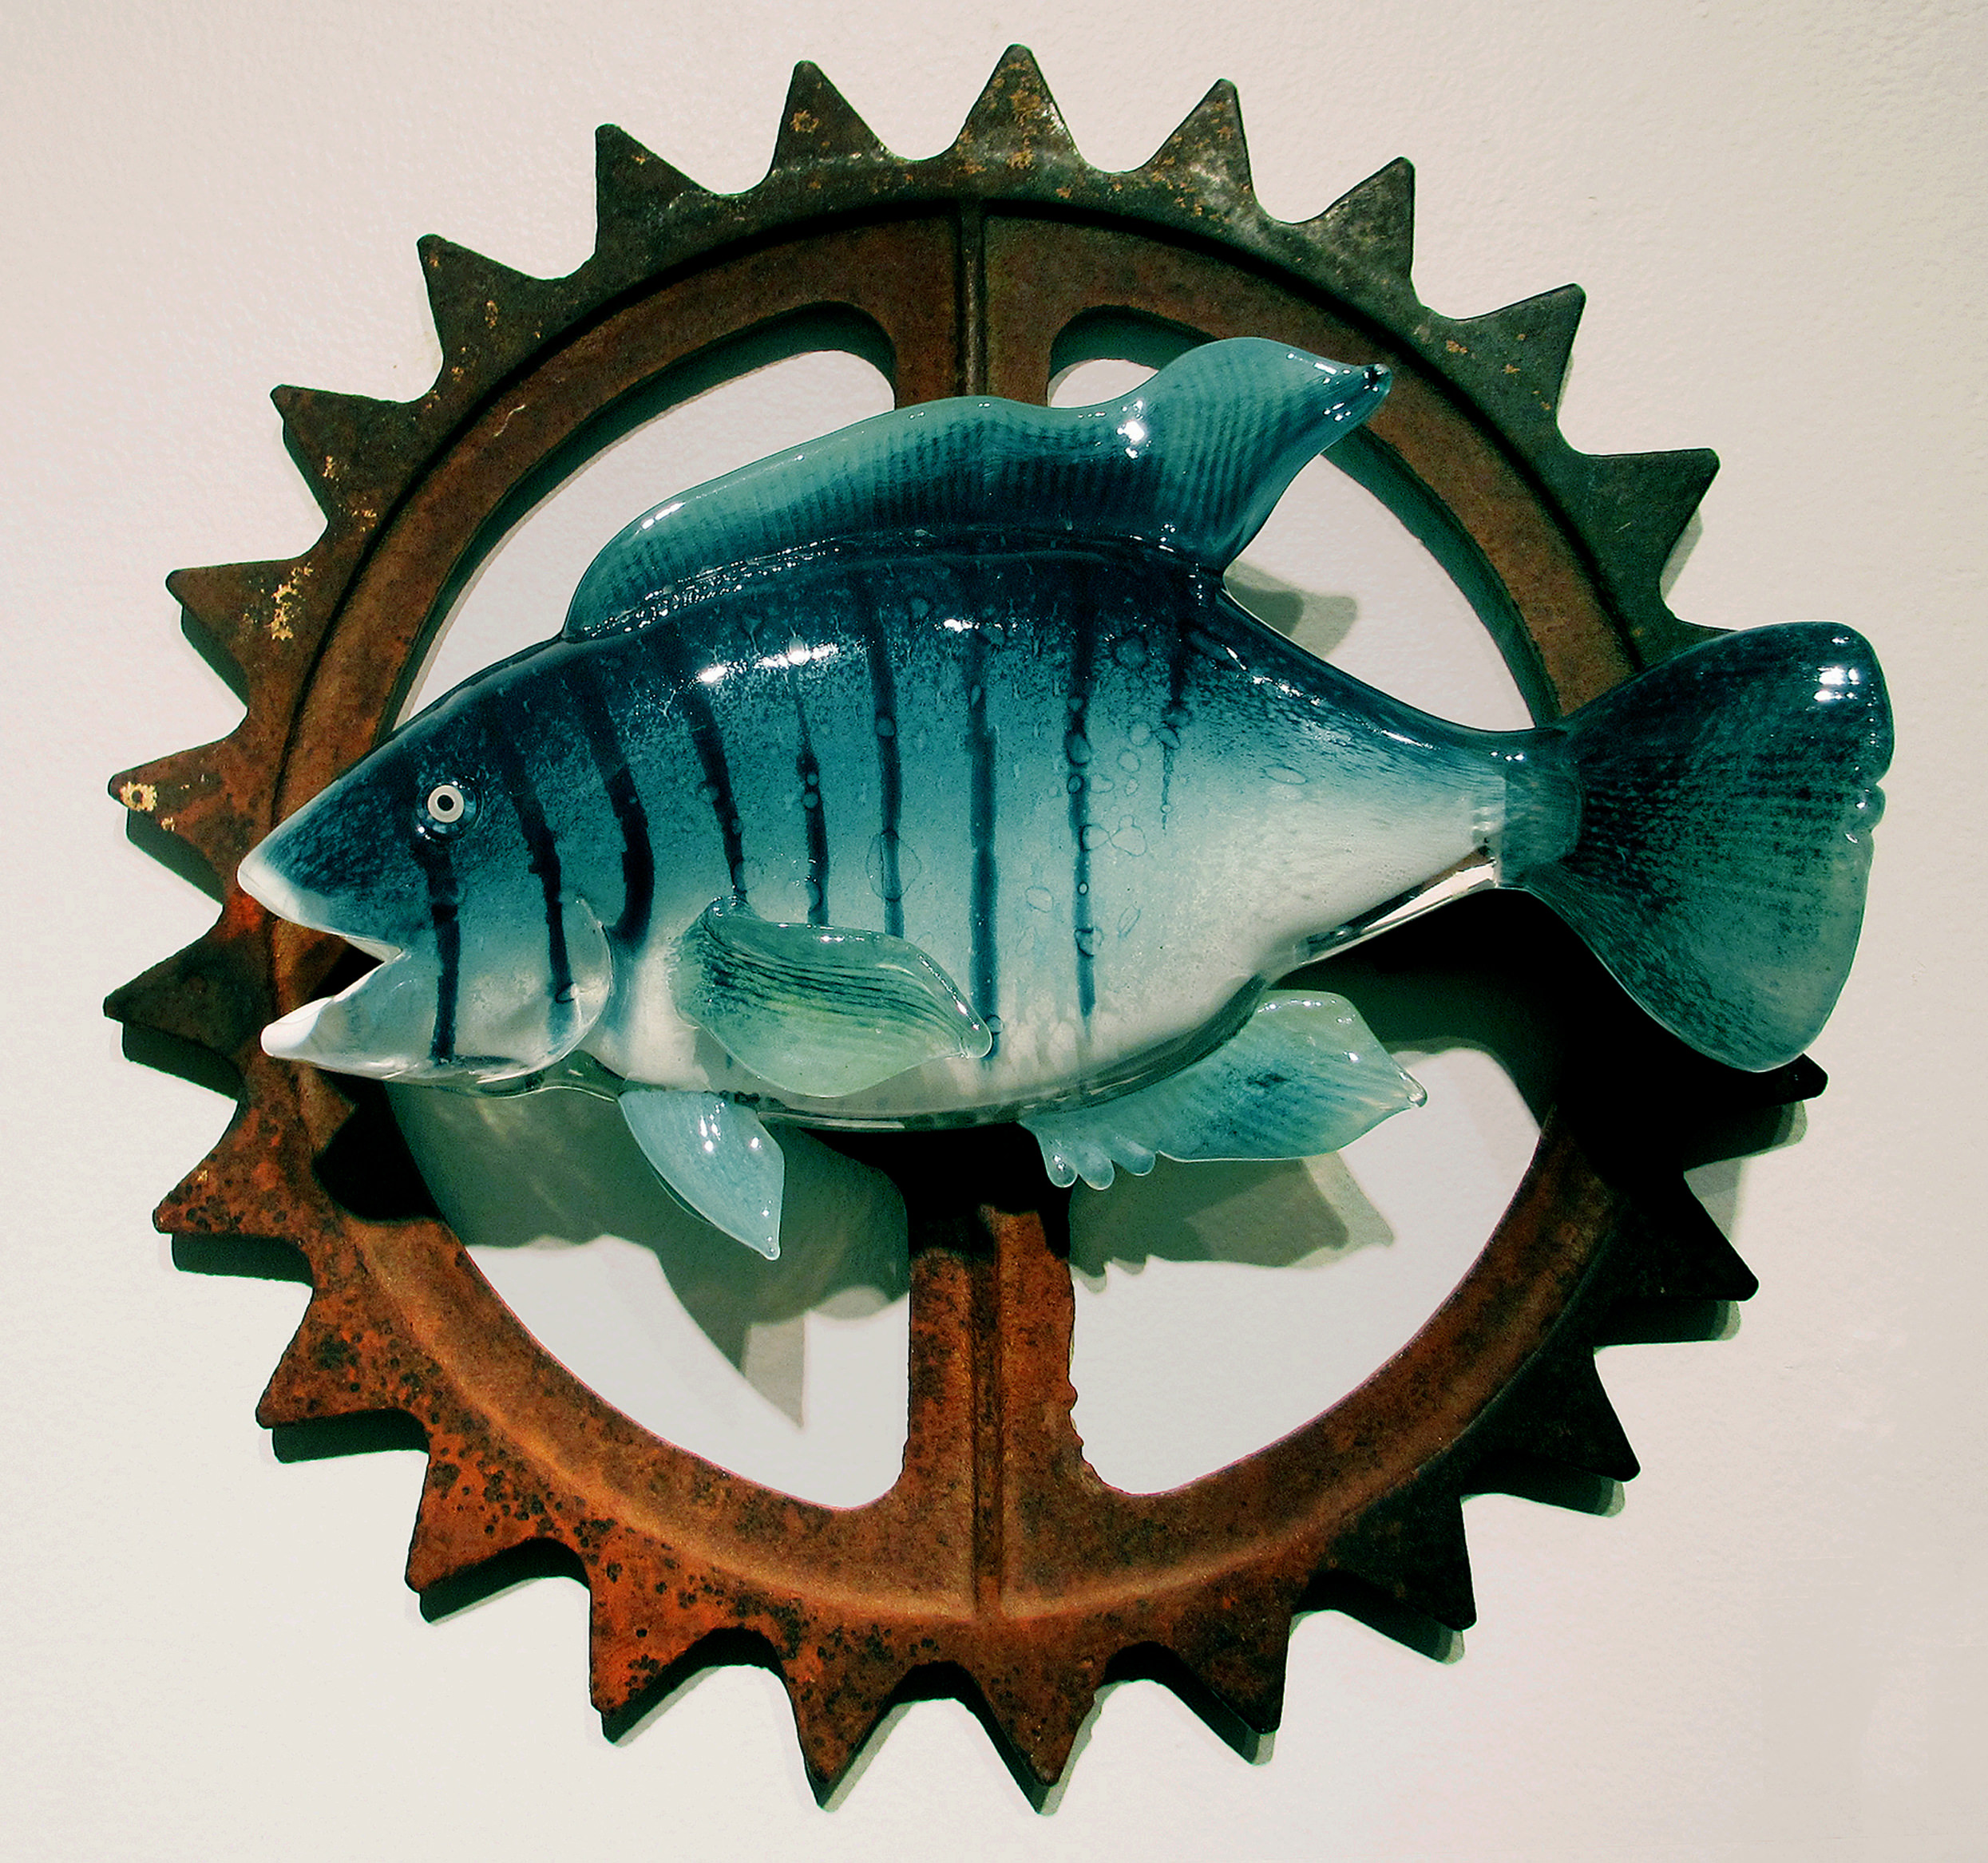 Blue Tilapia with Cog.